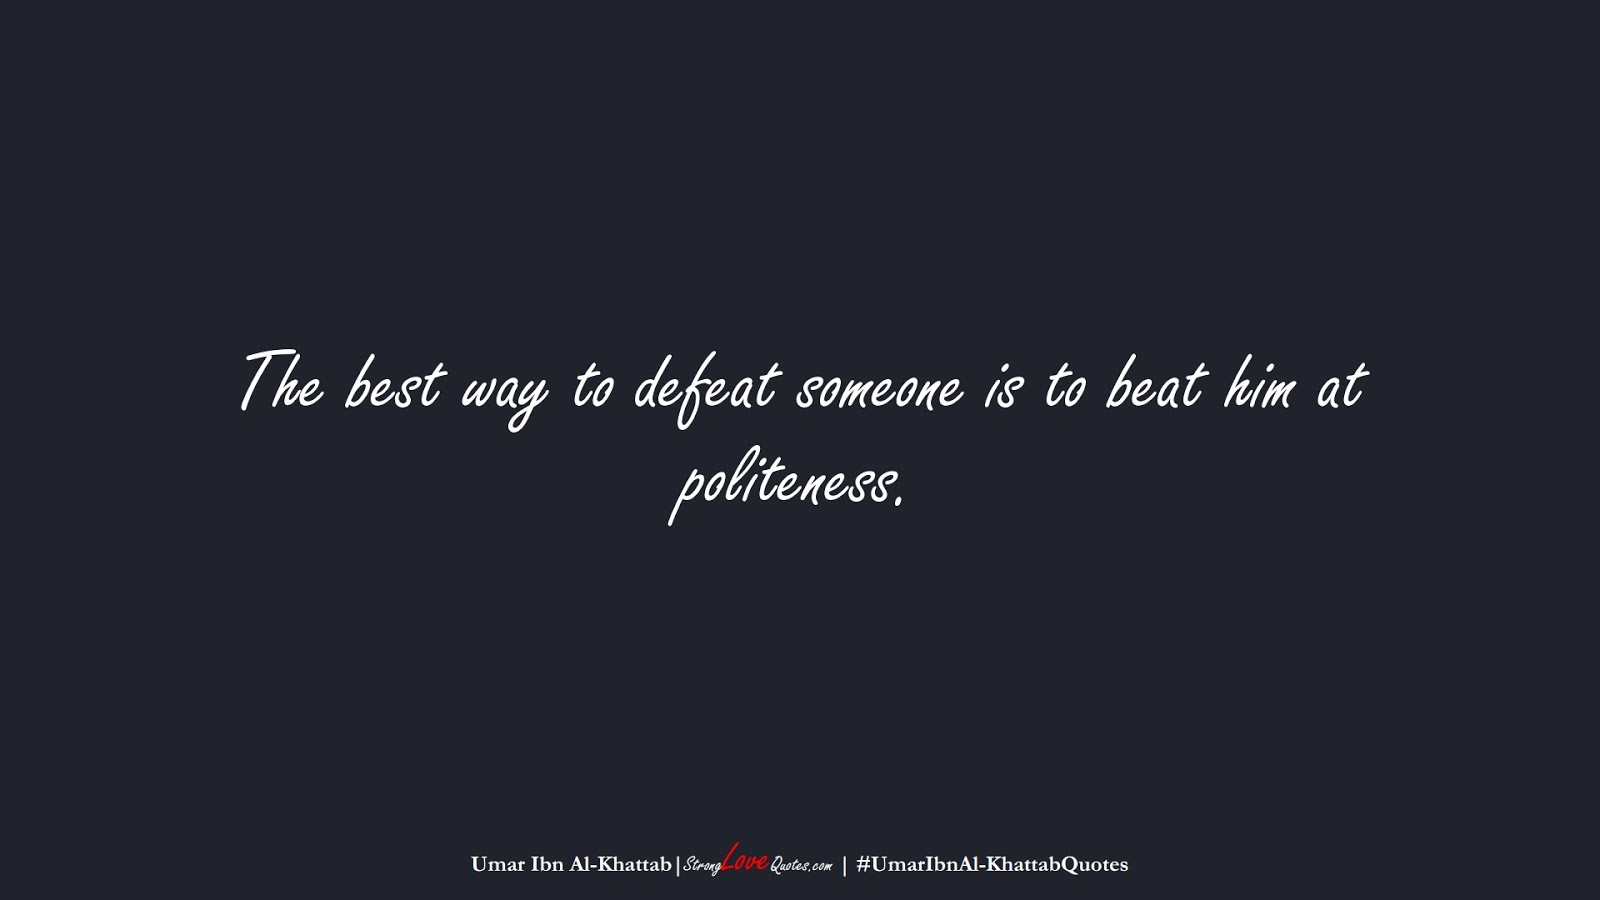 The best way to defeat someone is to beat him at politeness. (Umar Ibn Al-Khattab);  #UmarIbnAl-KhattabQuotes